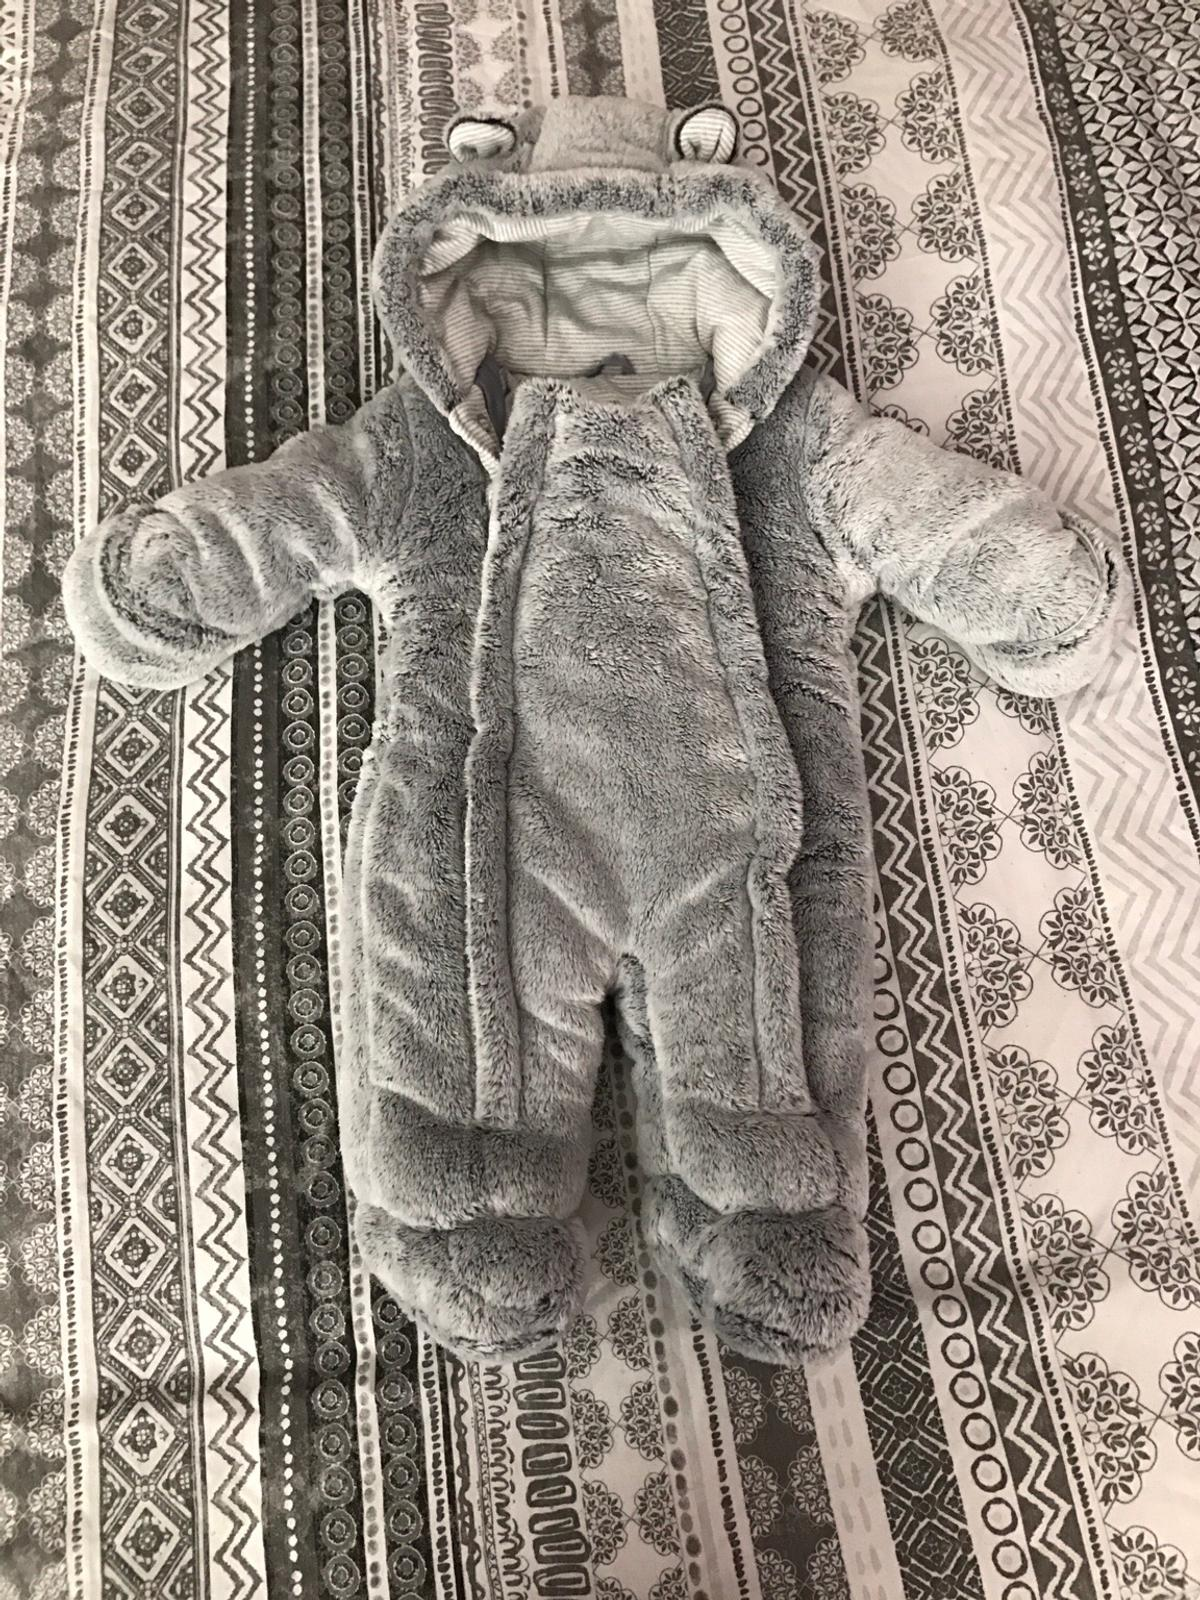 d8c858ff5 Baby boys snow suit in B90 Solihull for £4.00 for sale - Shpock